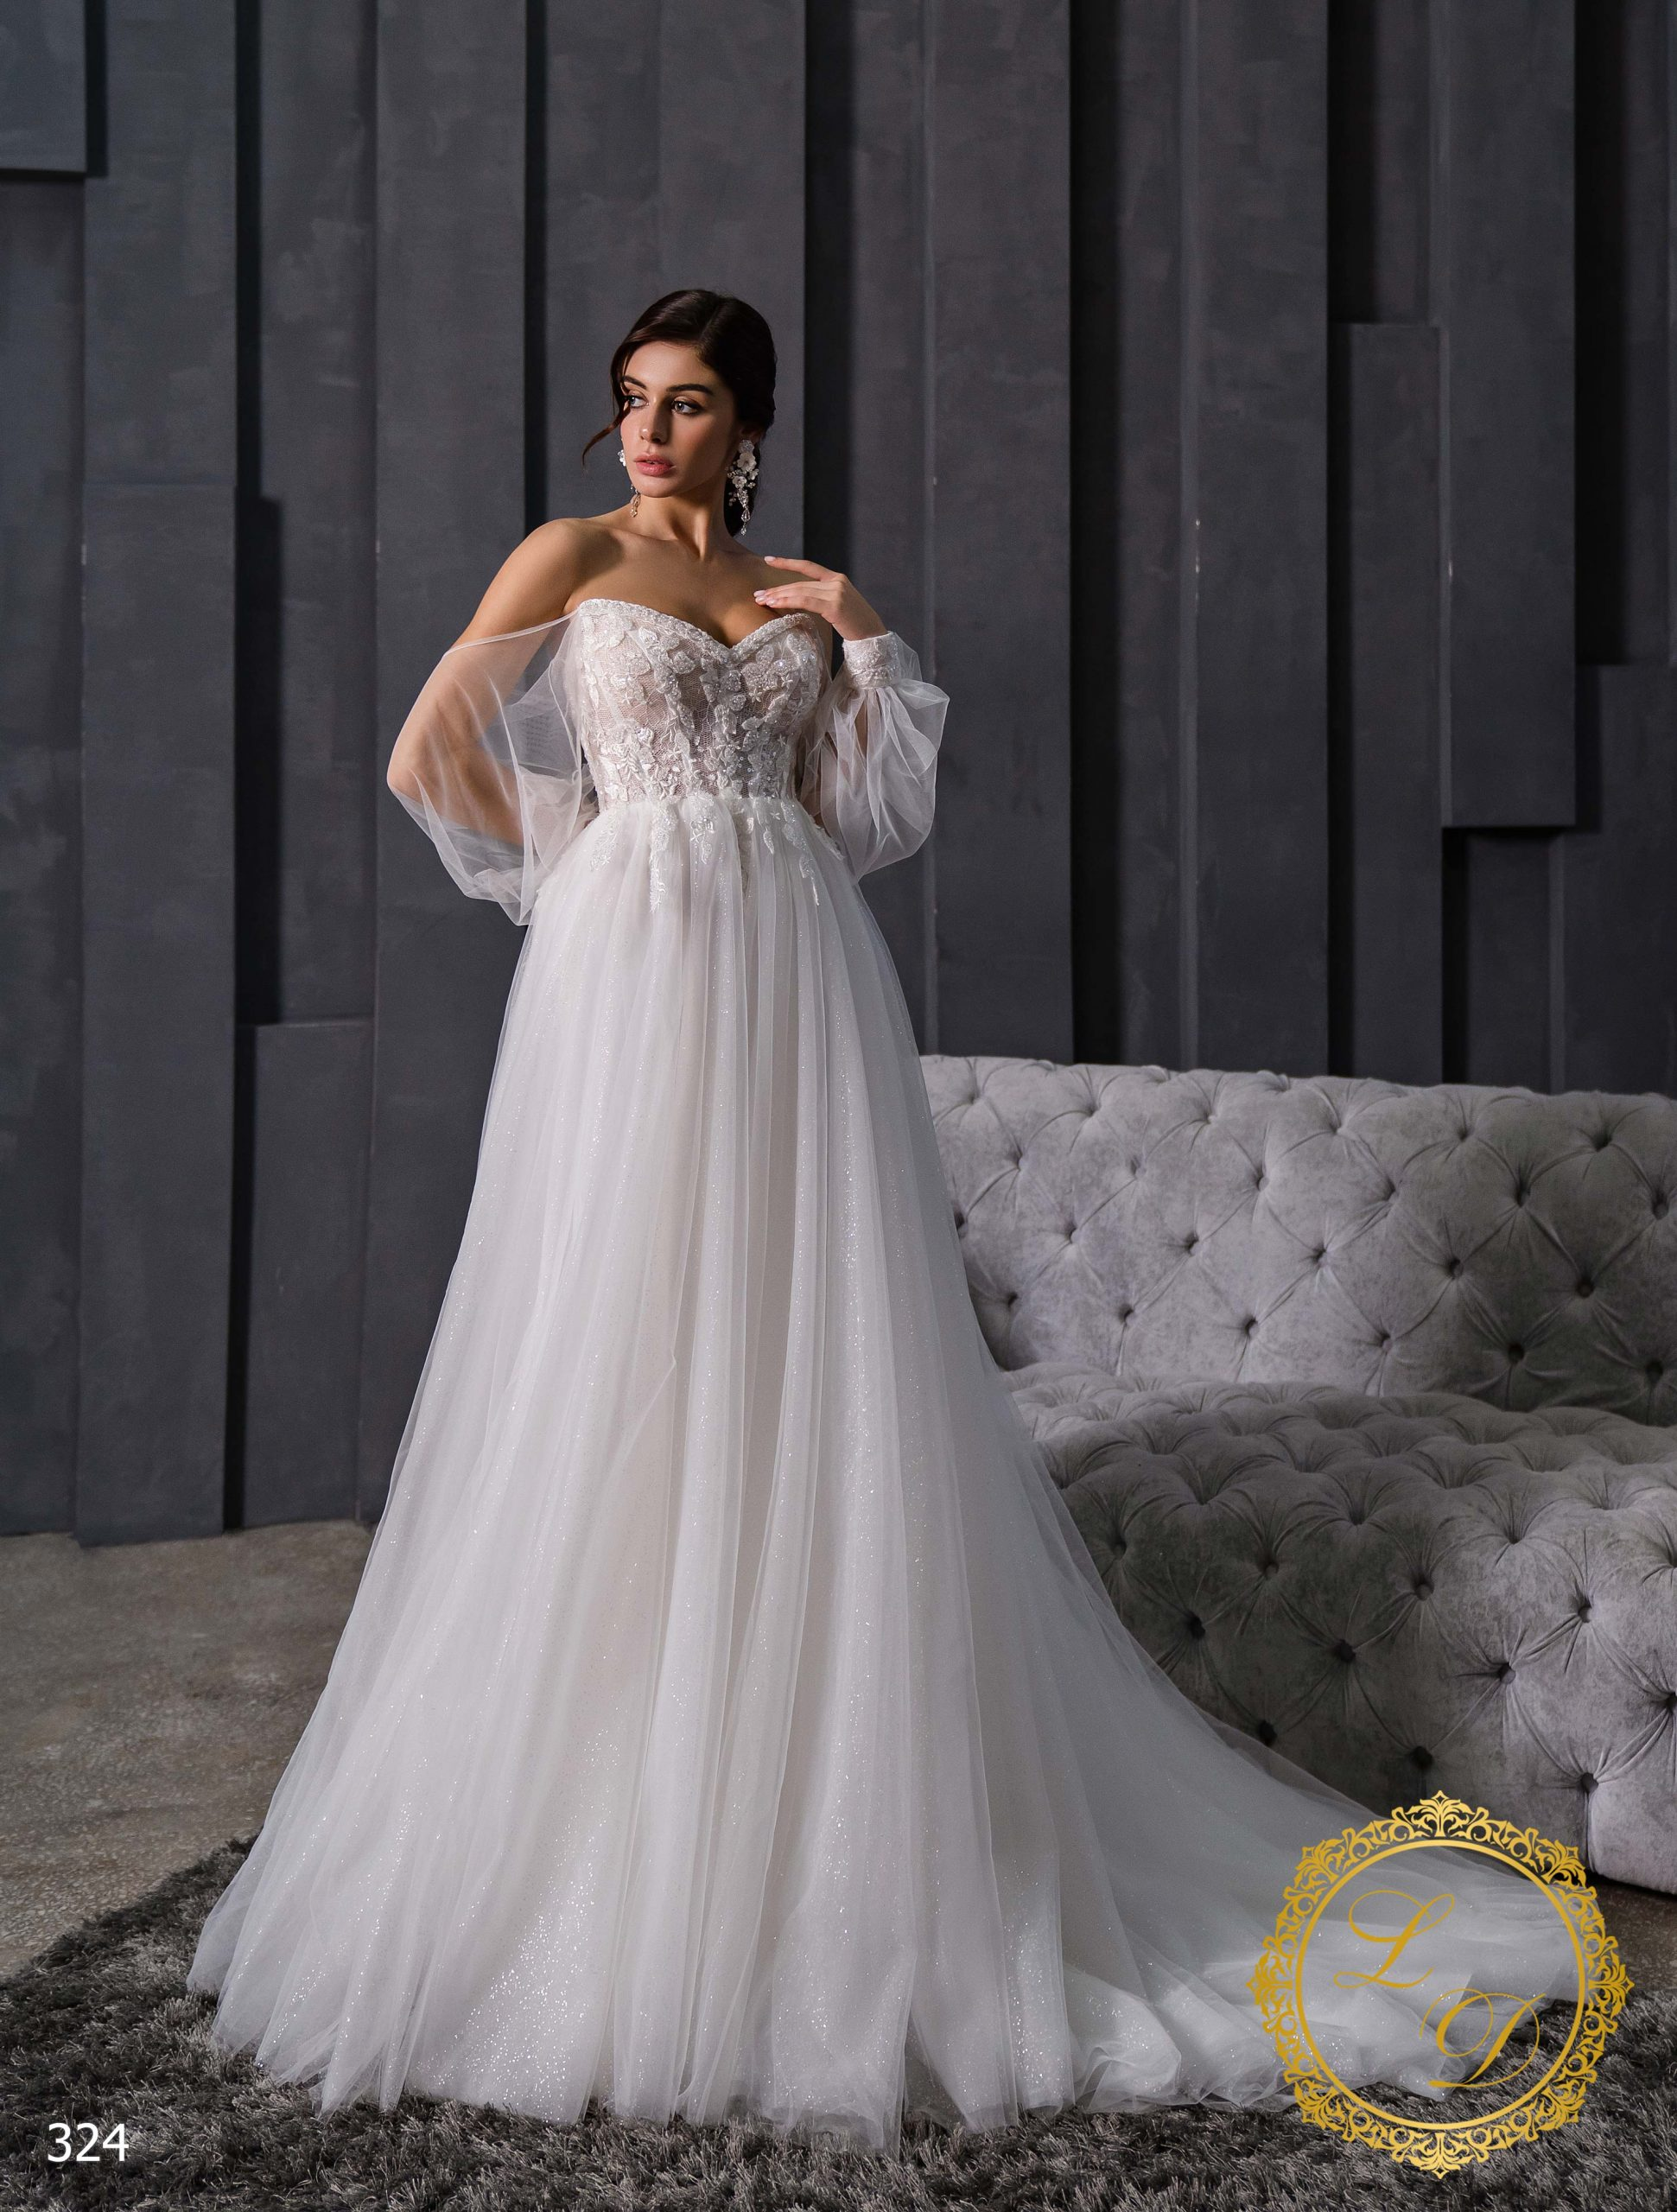 Wedding Dress Lady Di 324